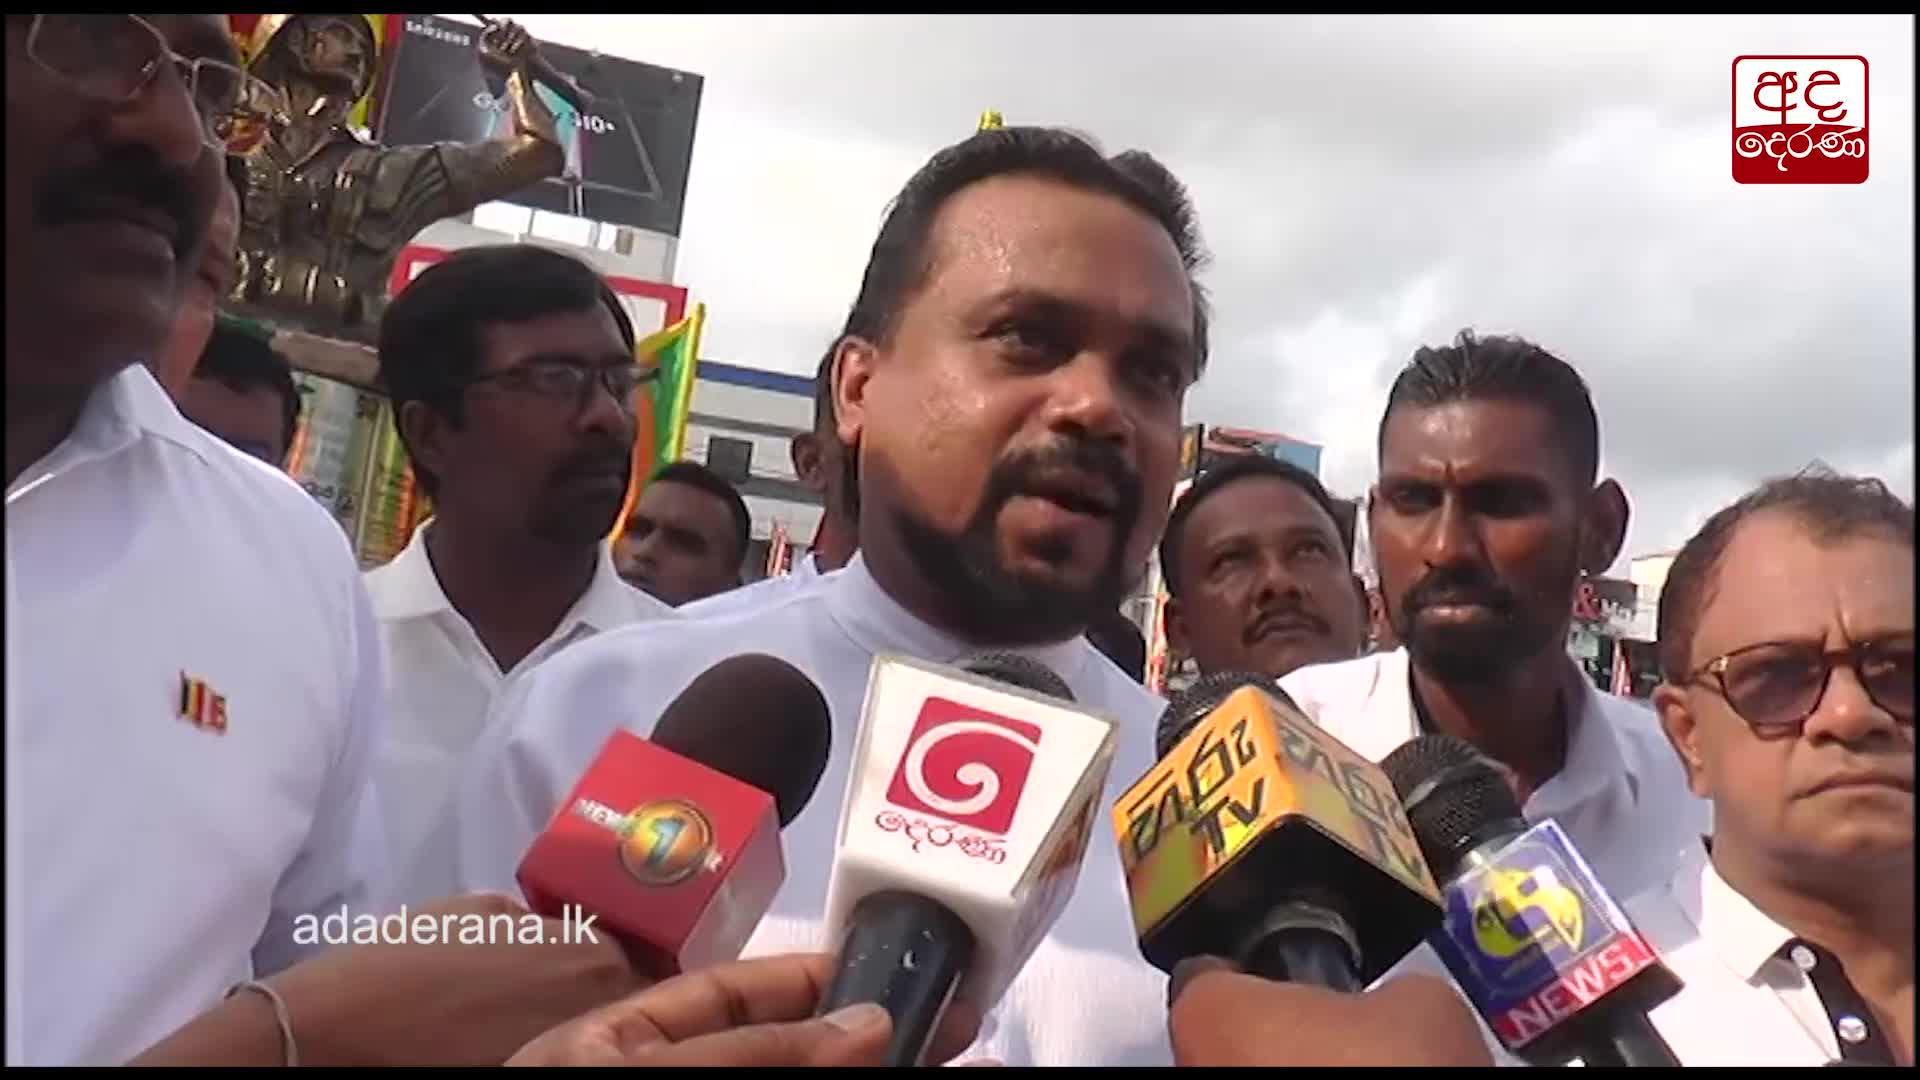 Useless to shut stable door after horse bolted - Wimal